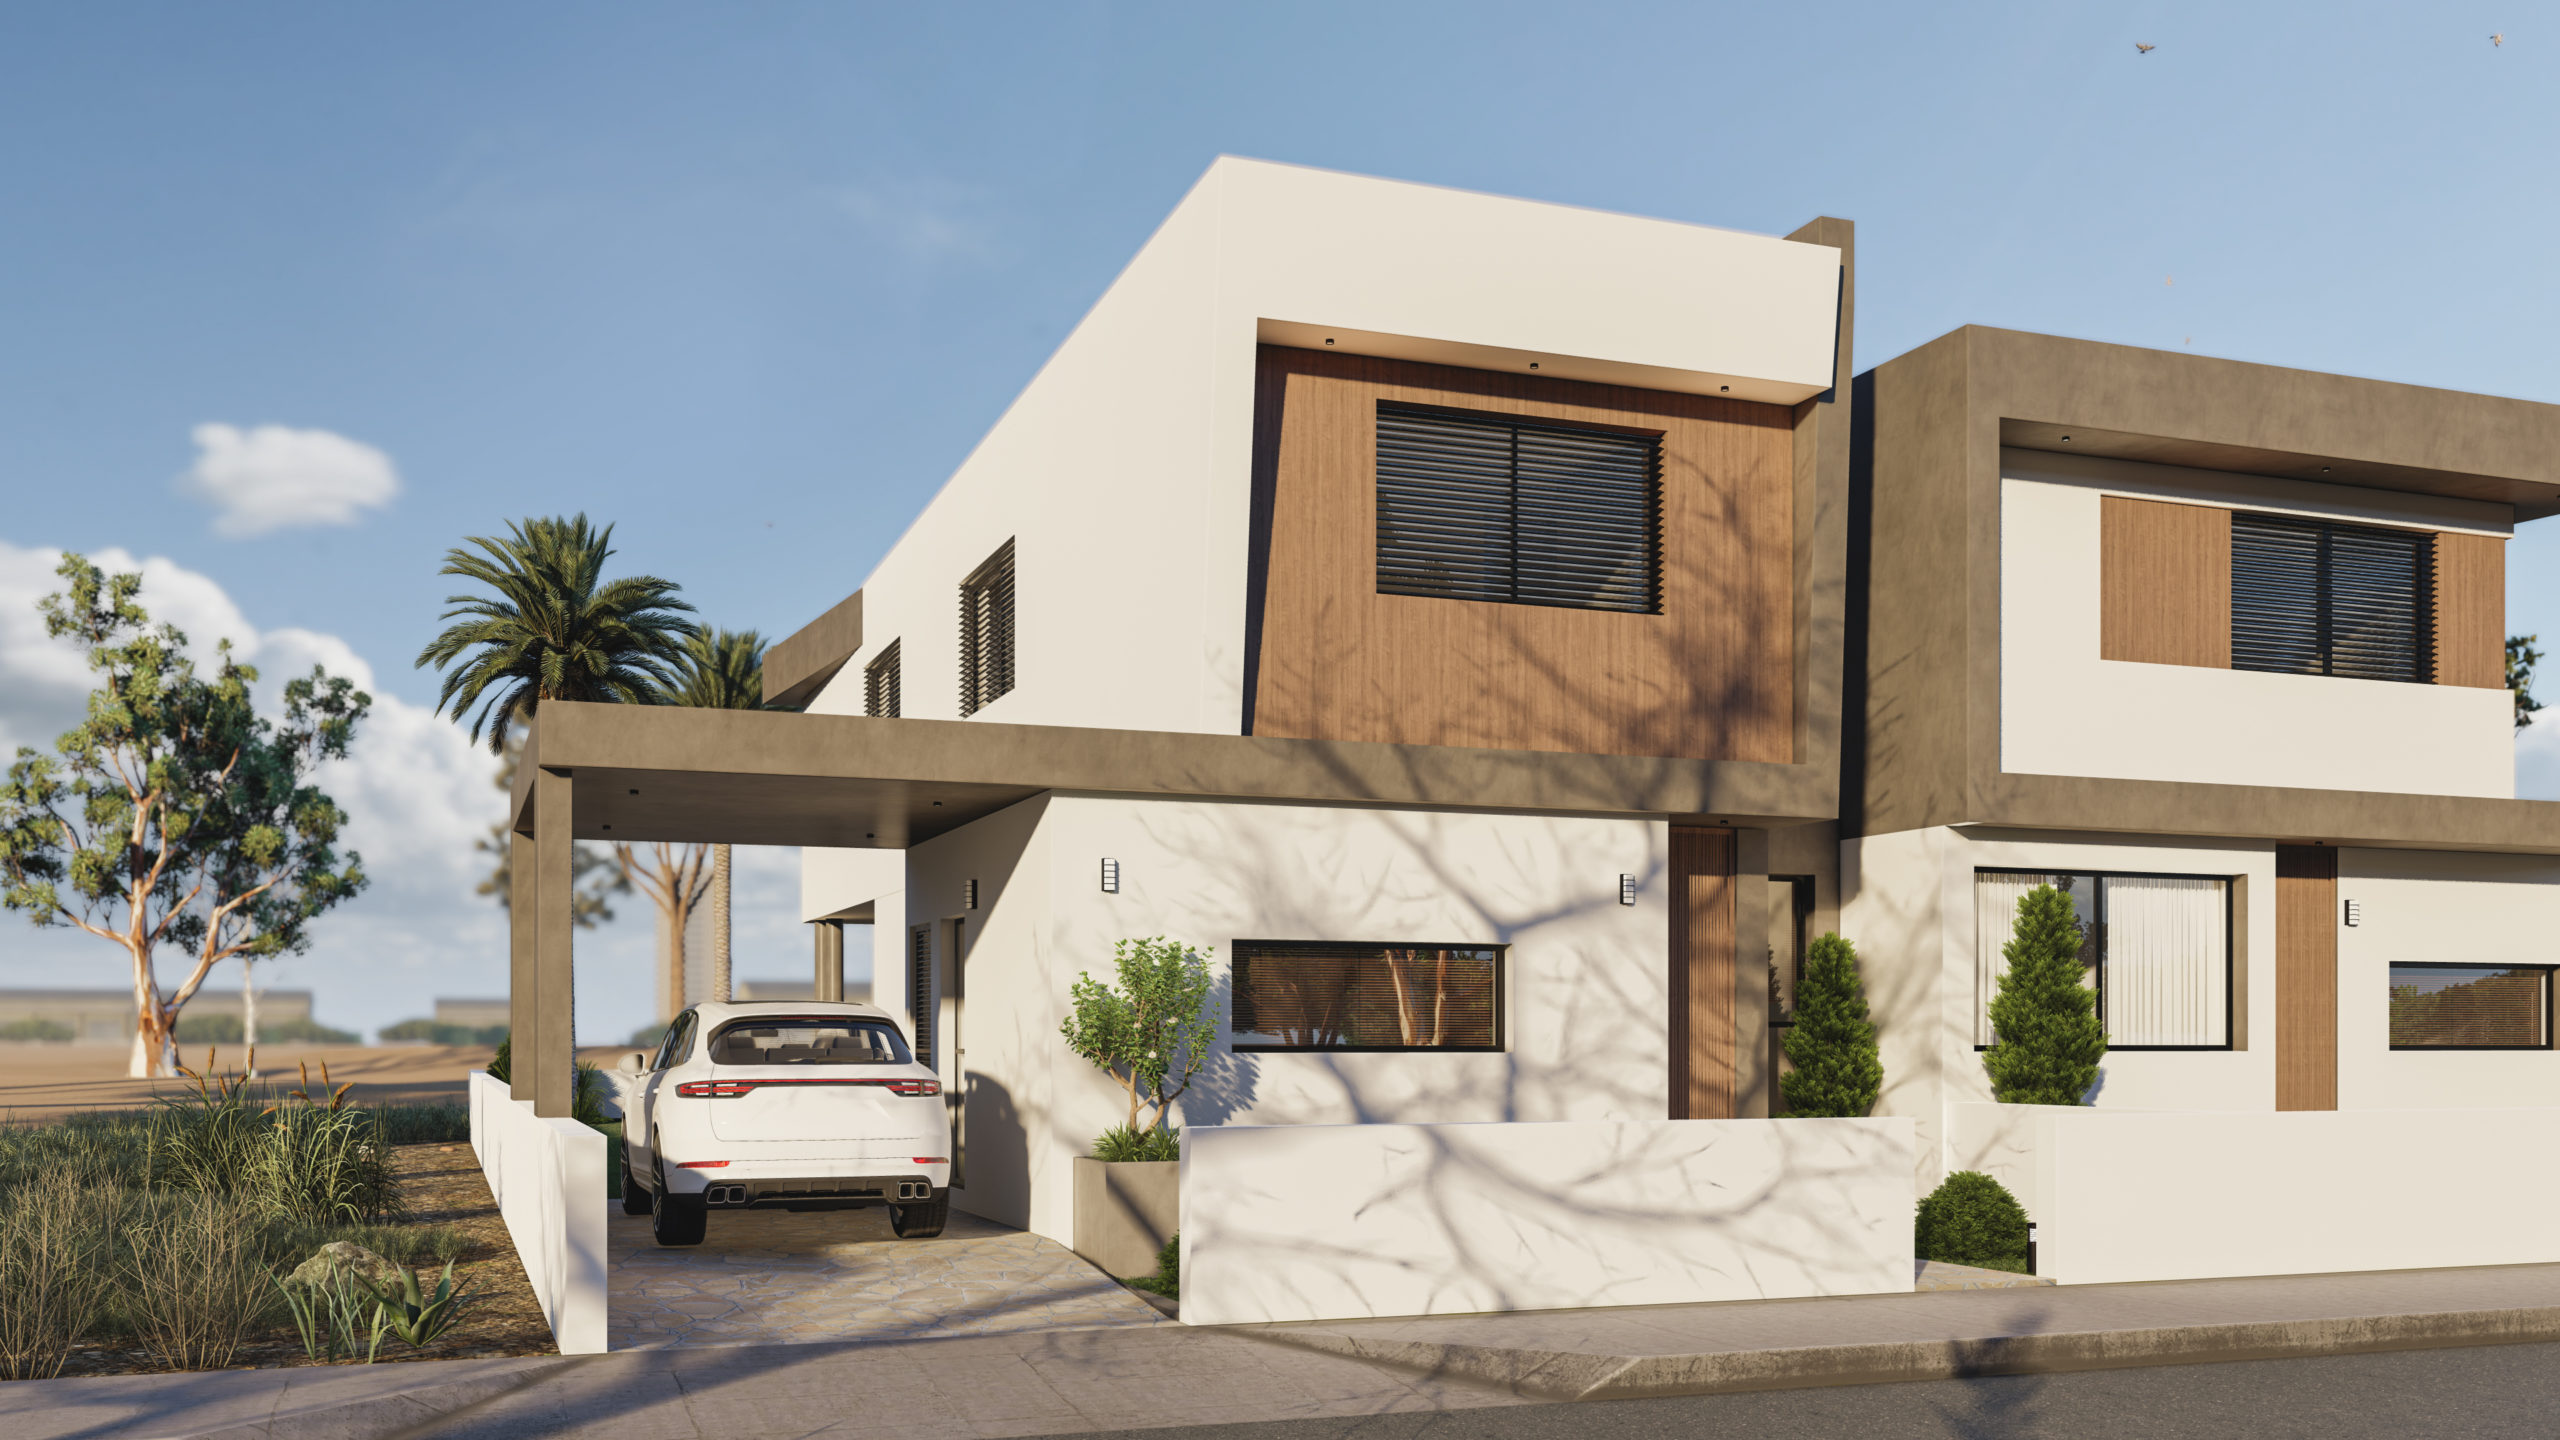 3-Bedroom House for Sale in Strovolos – near GSP Stadium